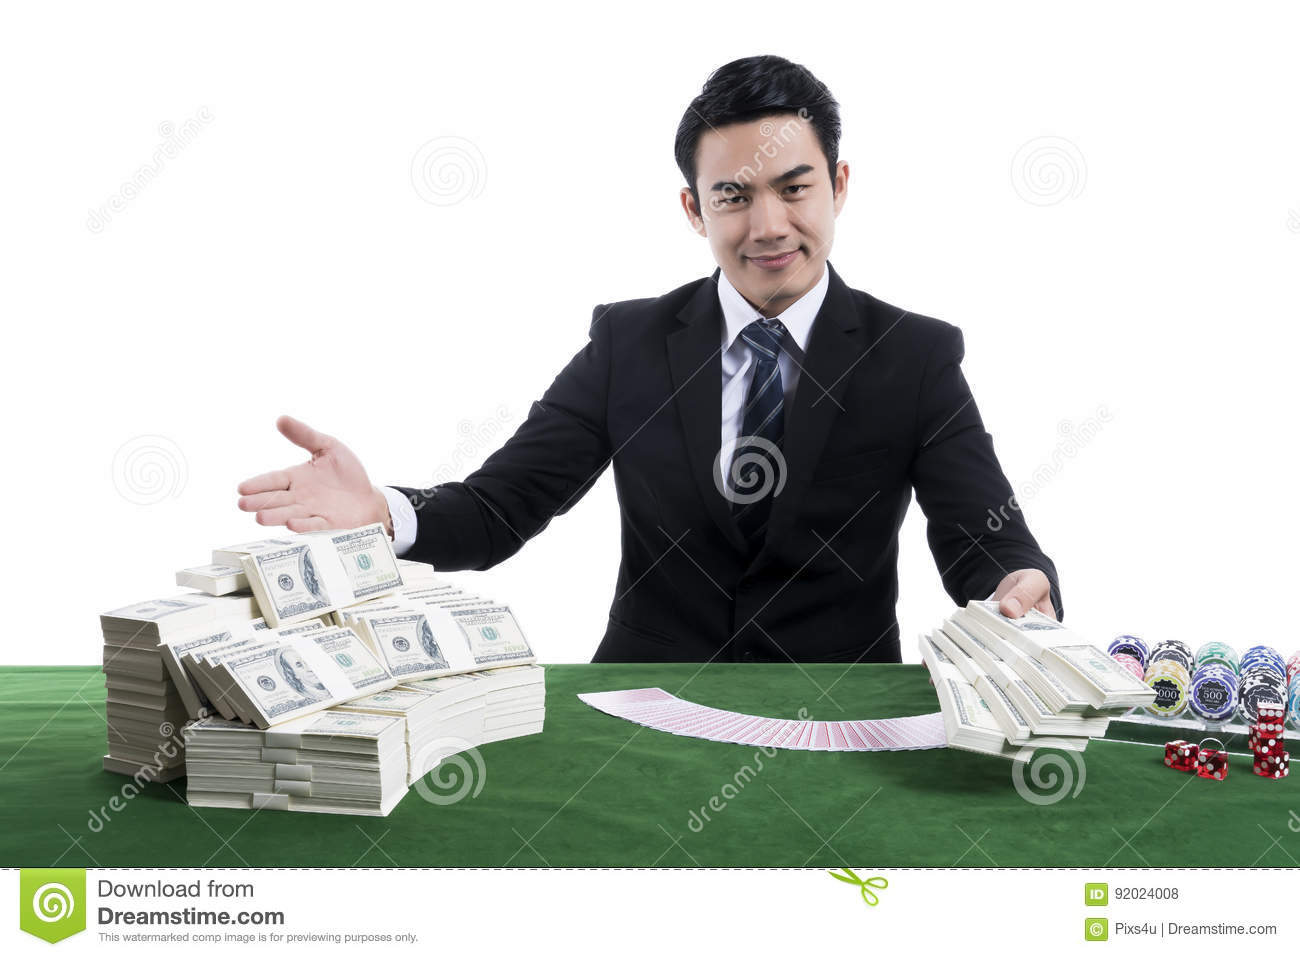 The young dealer holding banknote with gesture inviting and gambling devices on green table